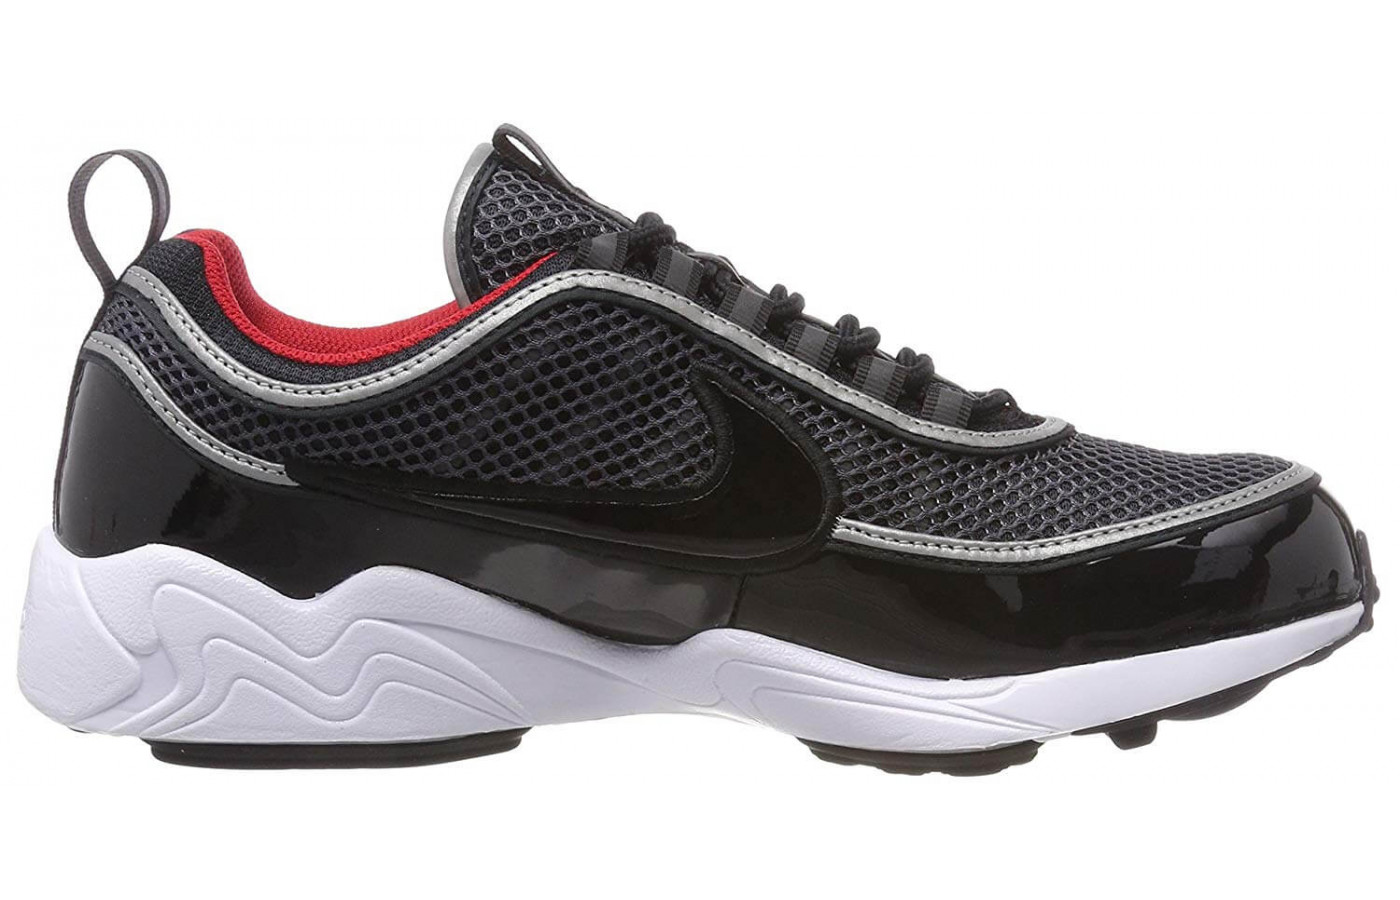 e98a729c65da Nike Air Zoom Spiridon  16 - To Buy or Not in May 2019